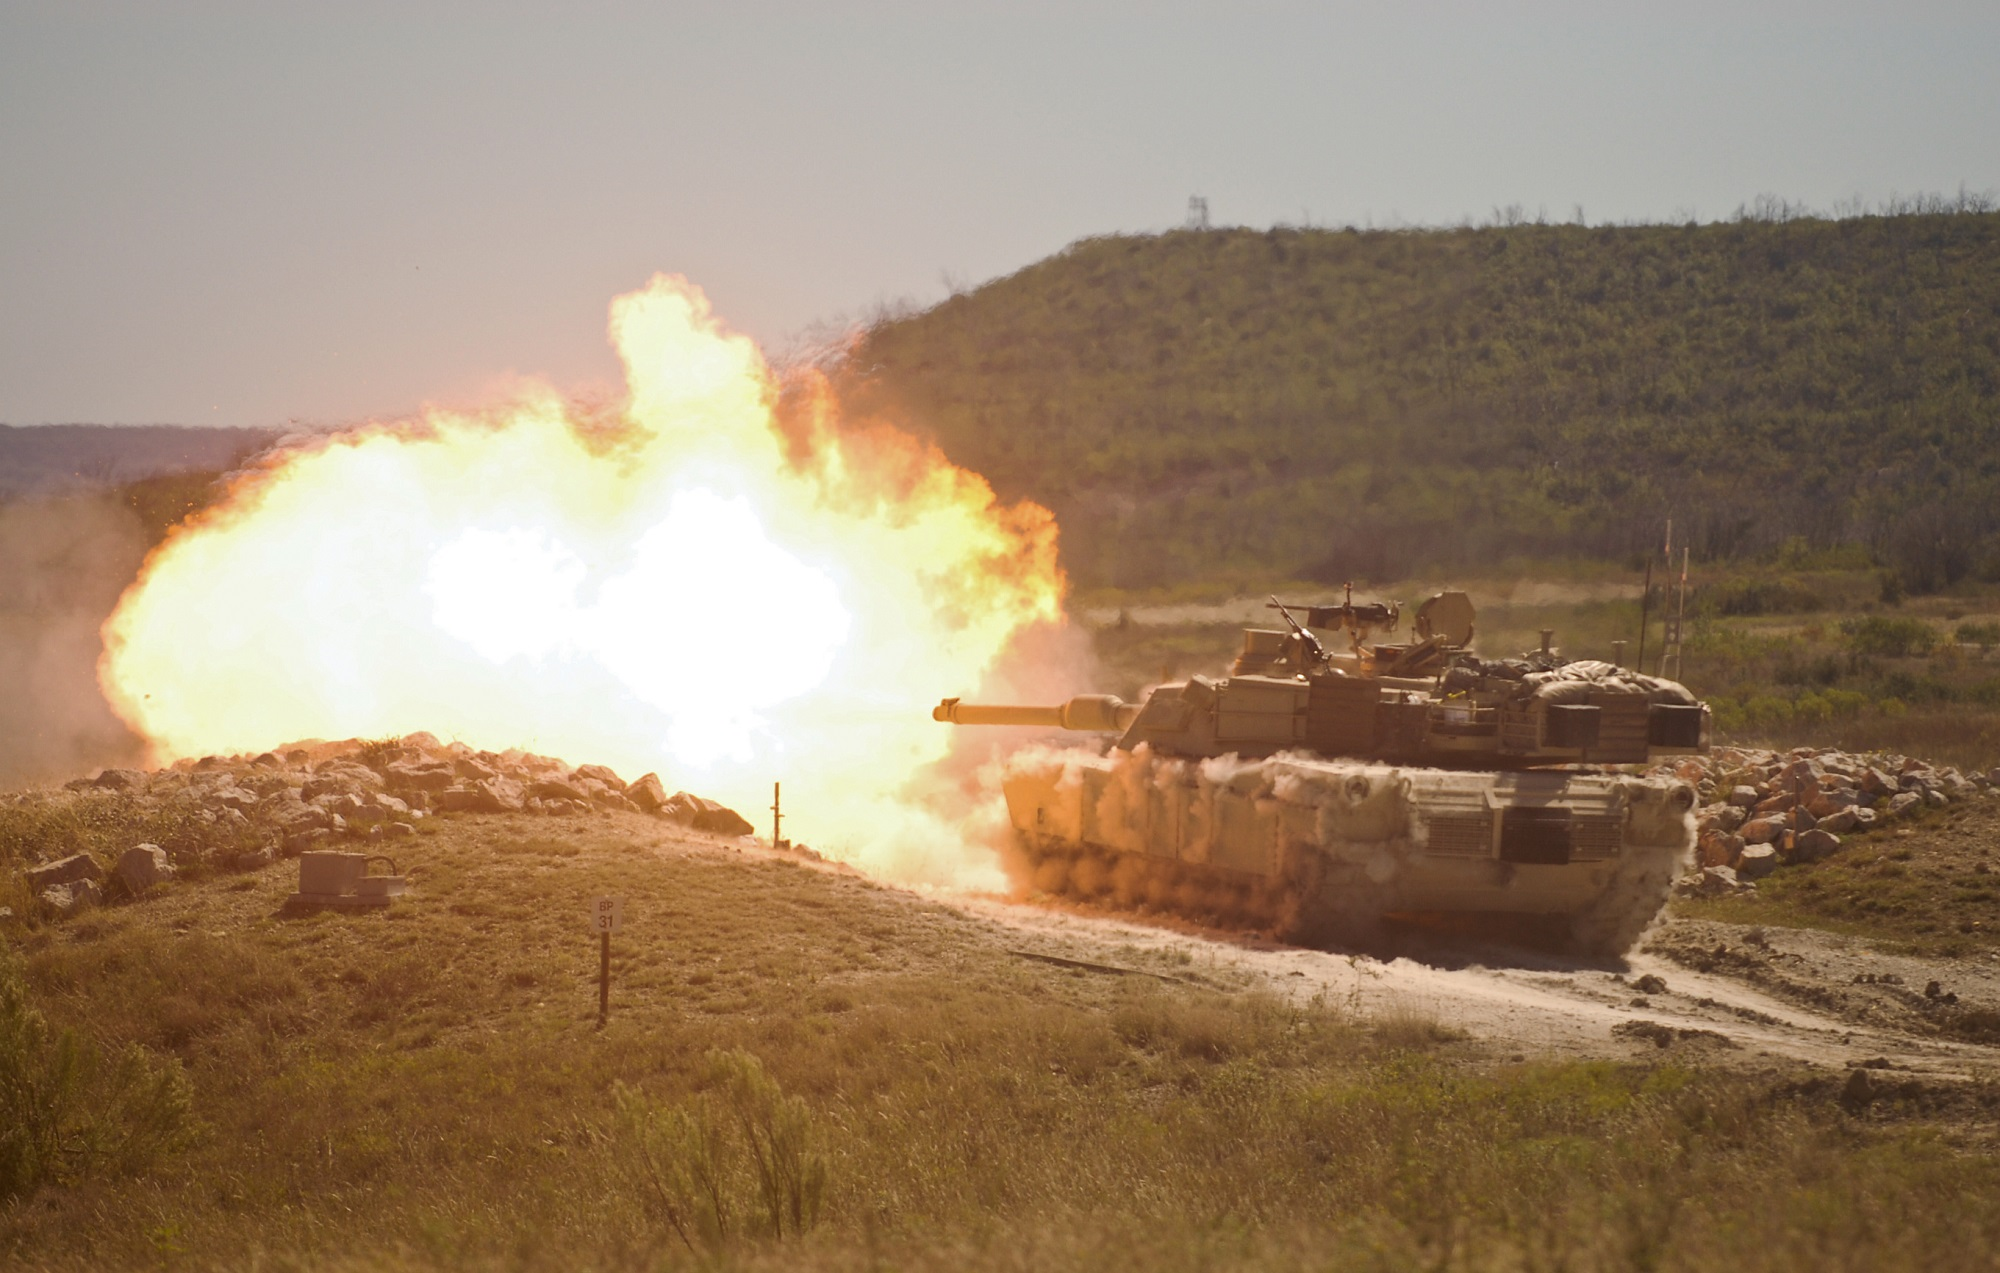 Army leaders say the replacement for the Abrams tank, shown here, will be packed with sensors for better situation awareness. (Maj. Adam Weece/U.S. Army)